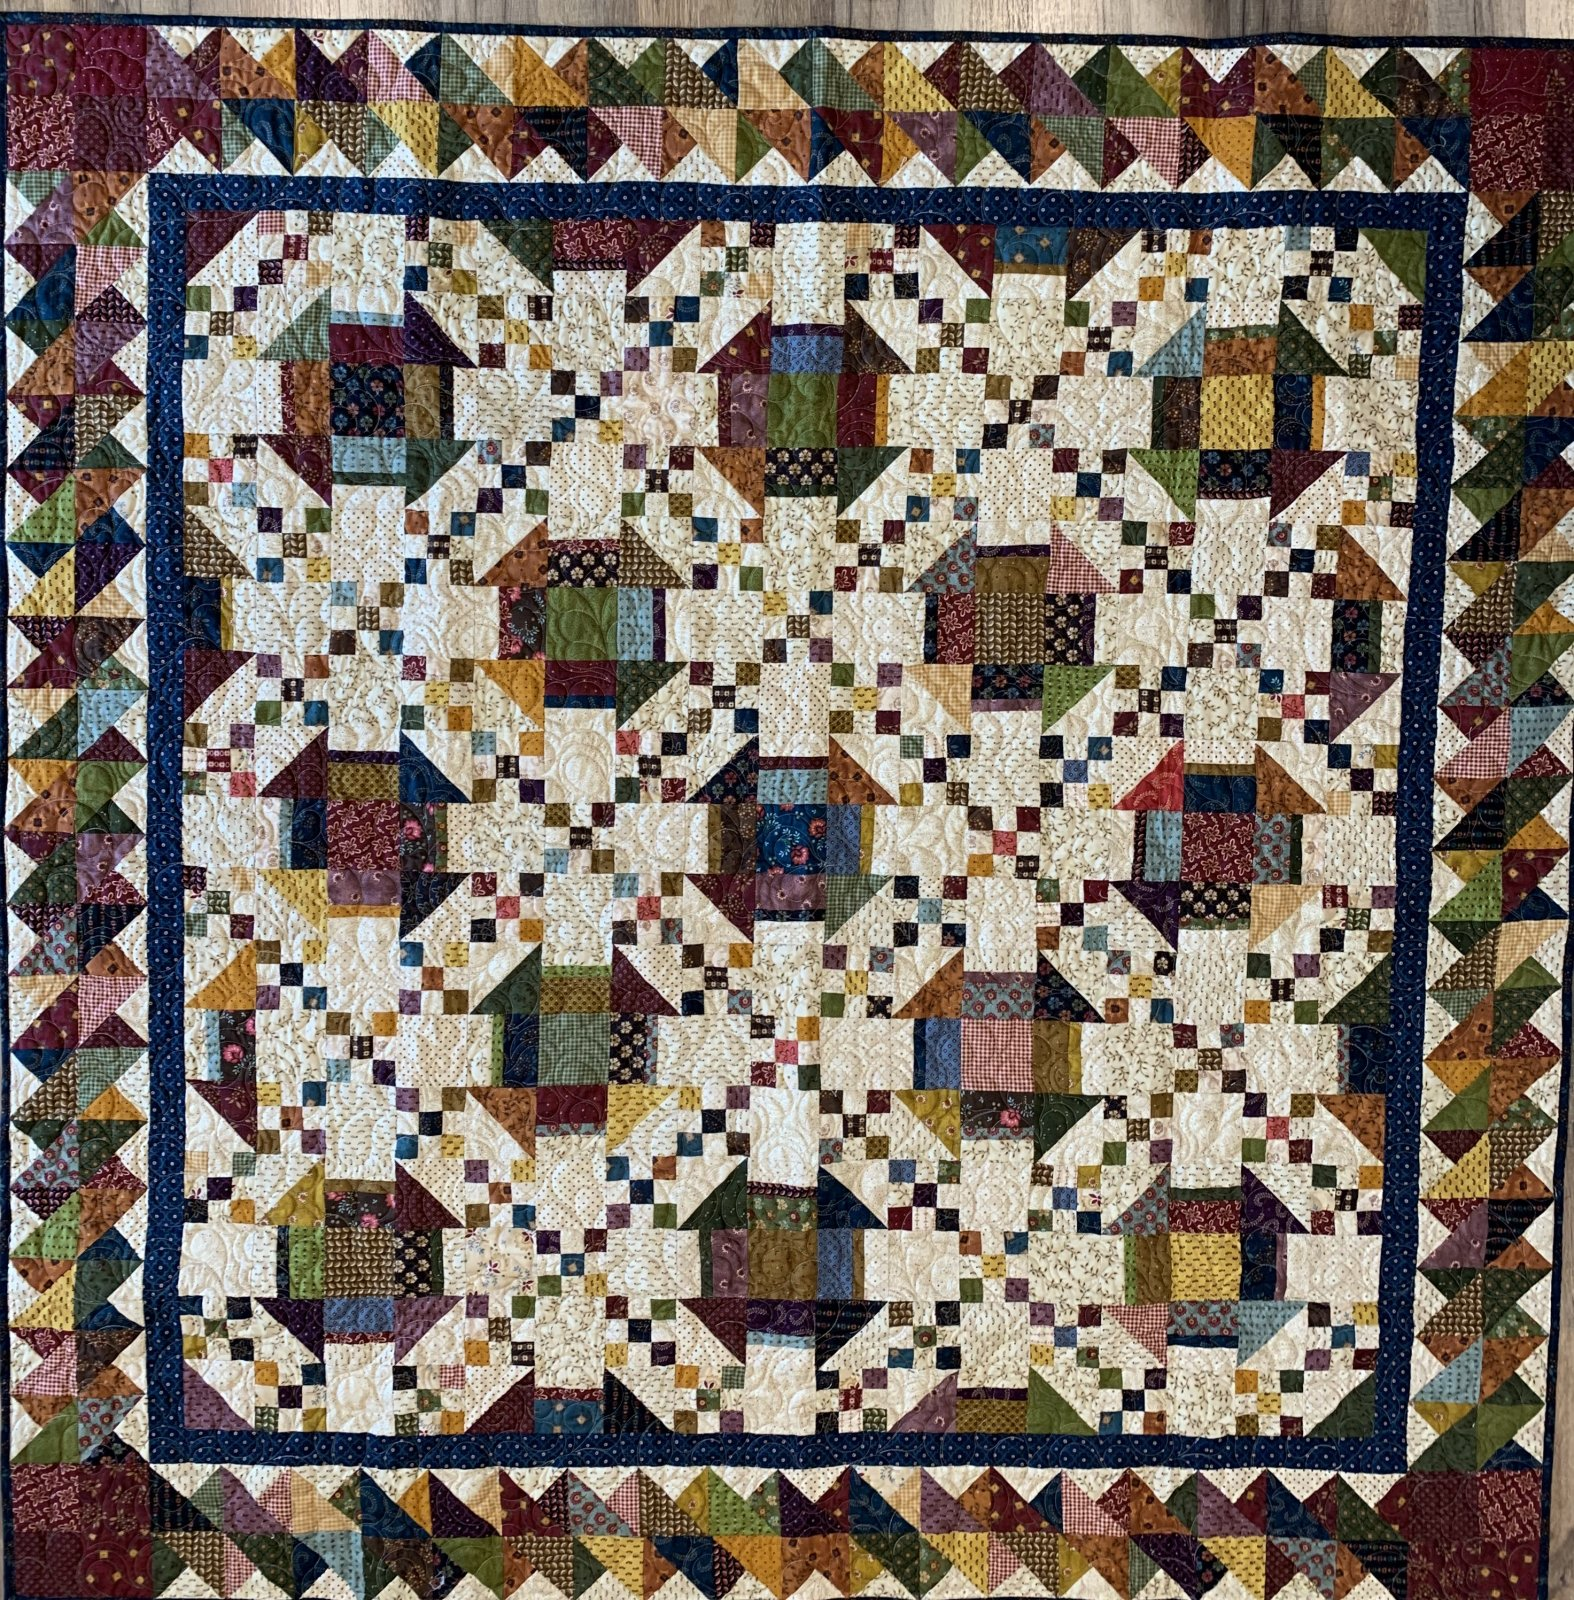 Sunday s Best Quilt 66 x 66